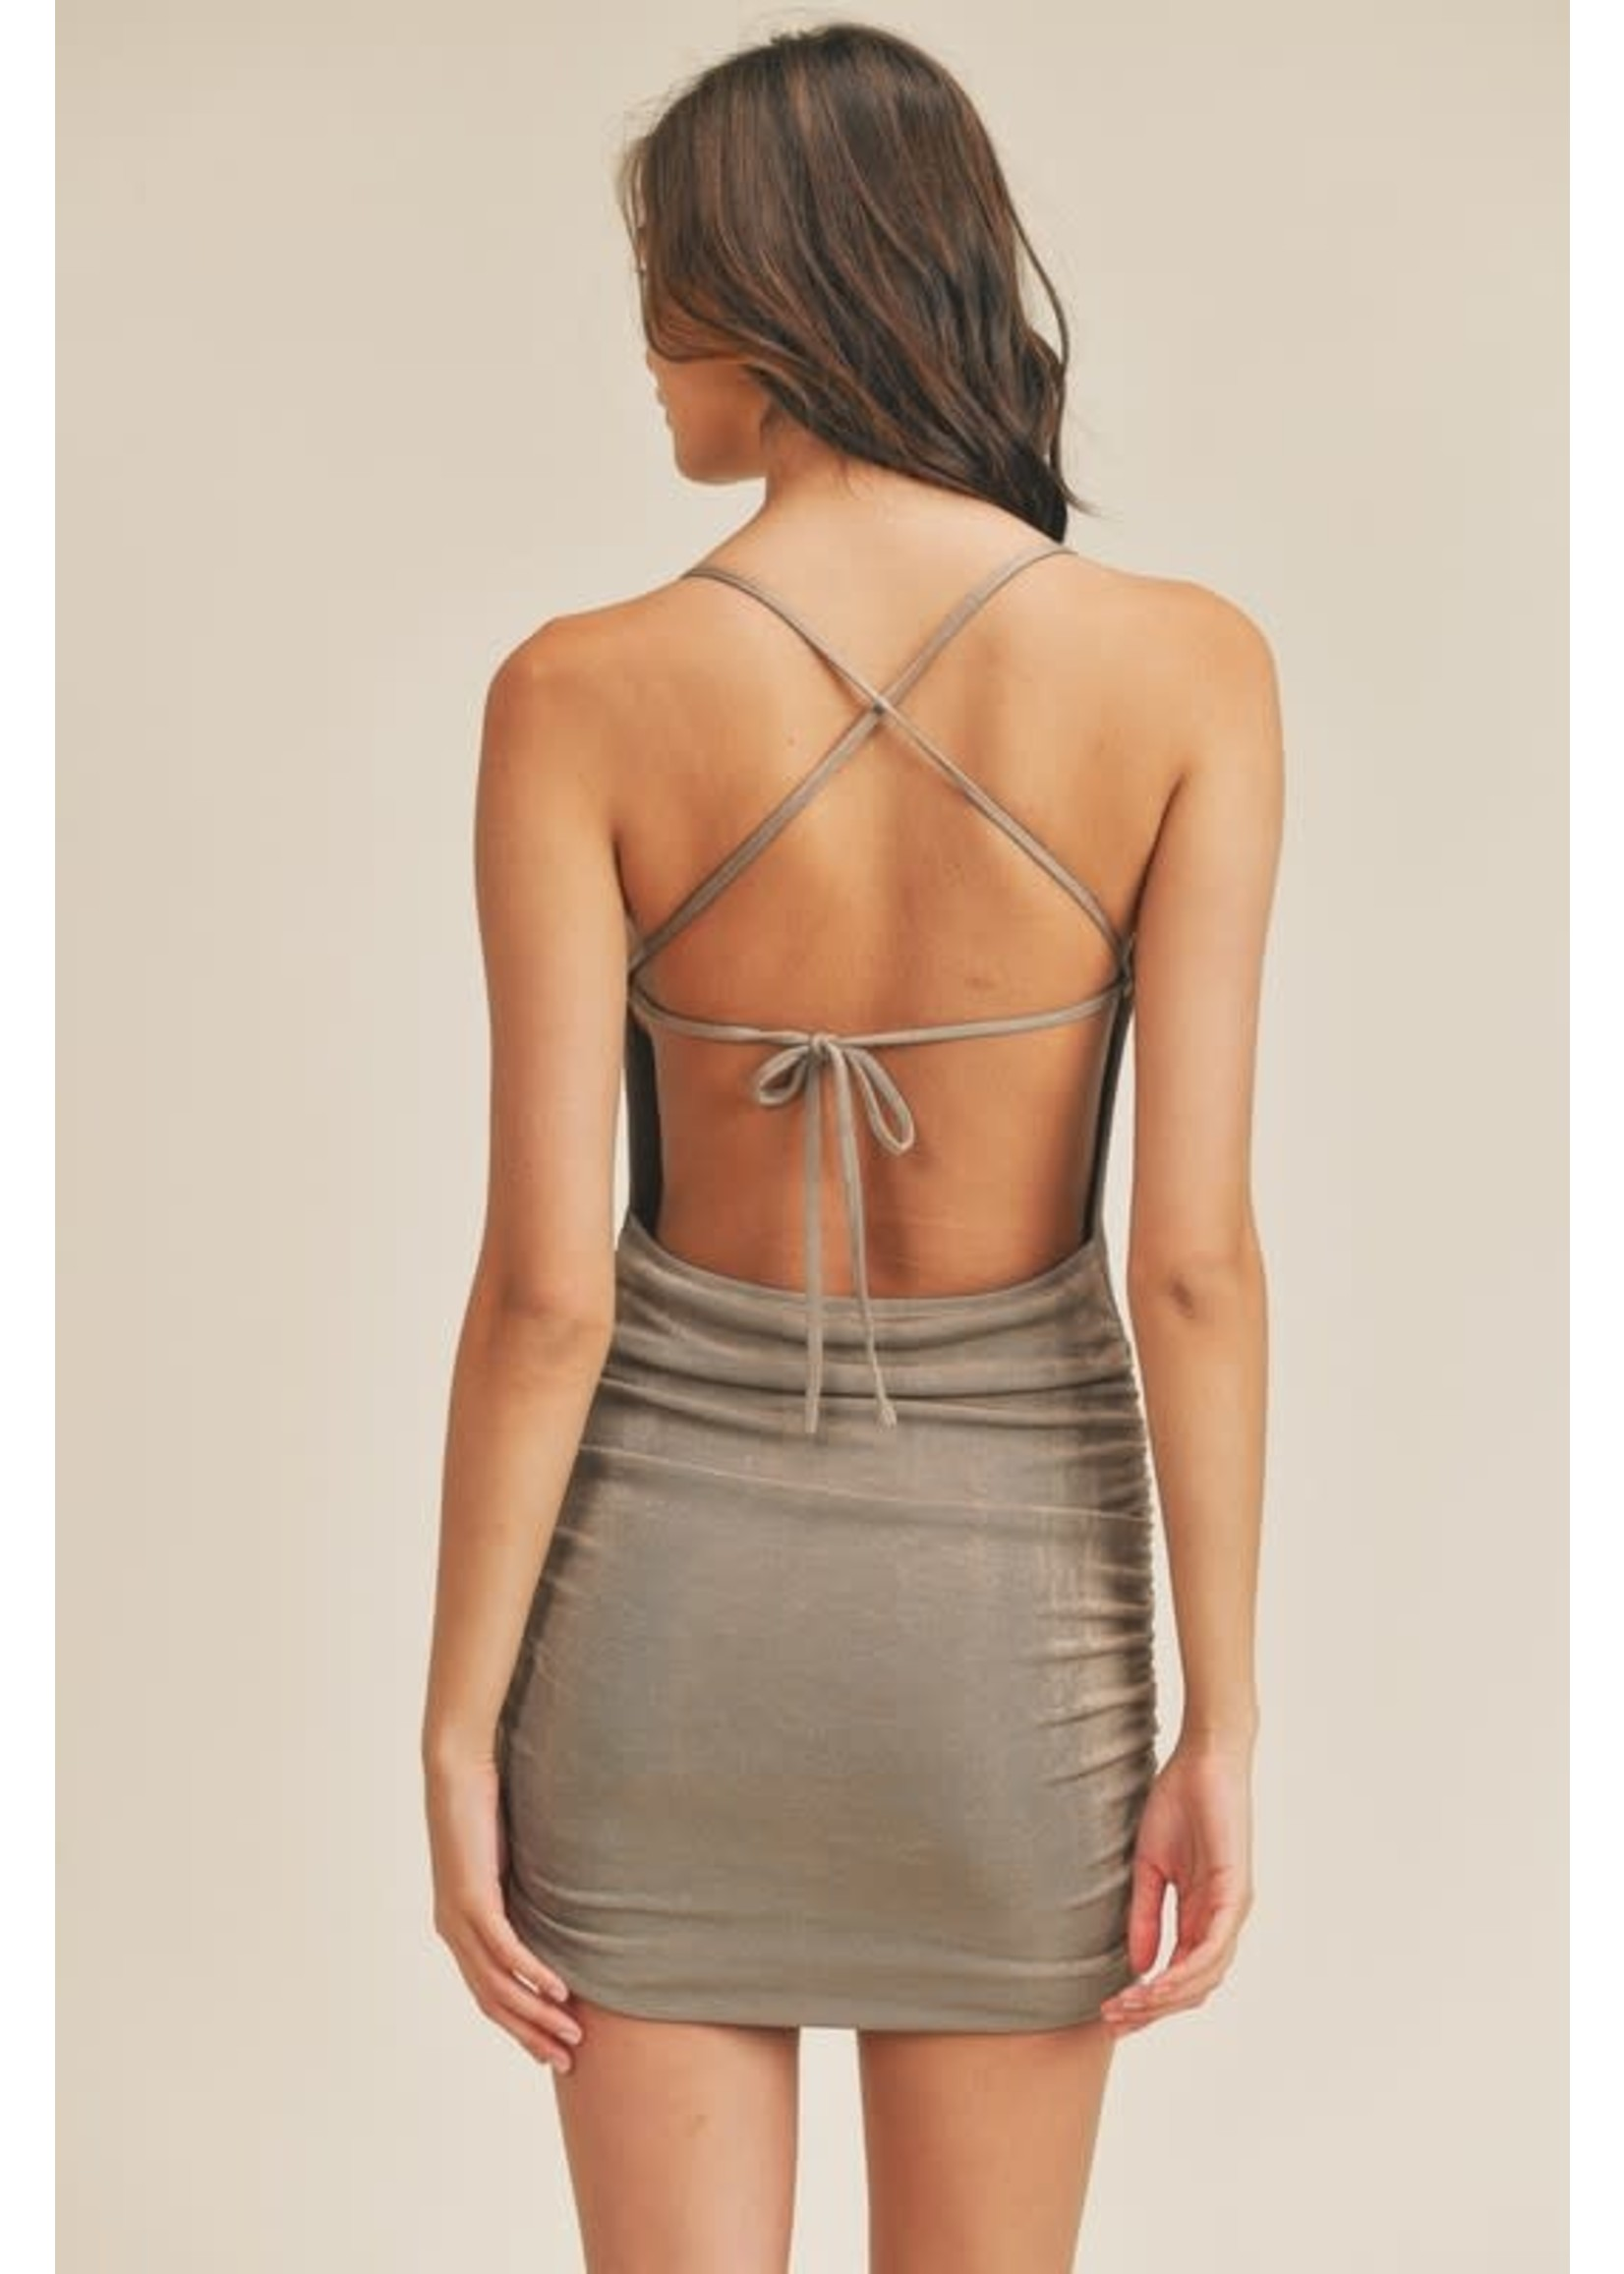 Mable Slinky Side Ruched Open Back Dress - MD2547